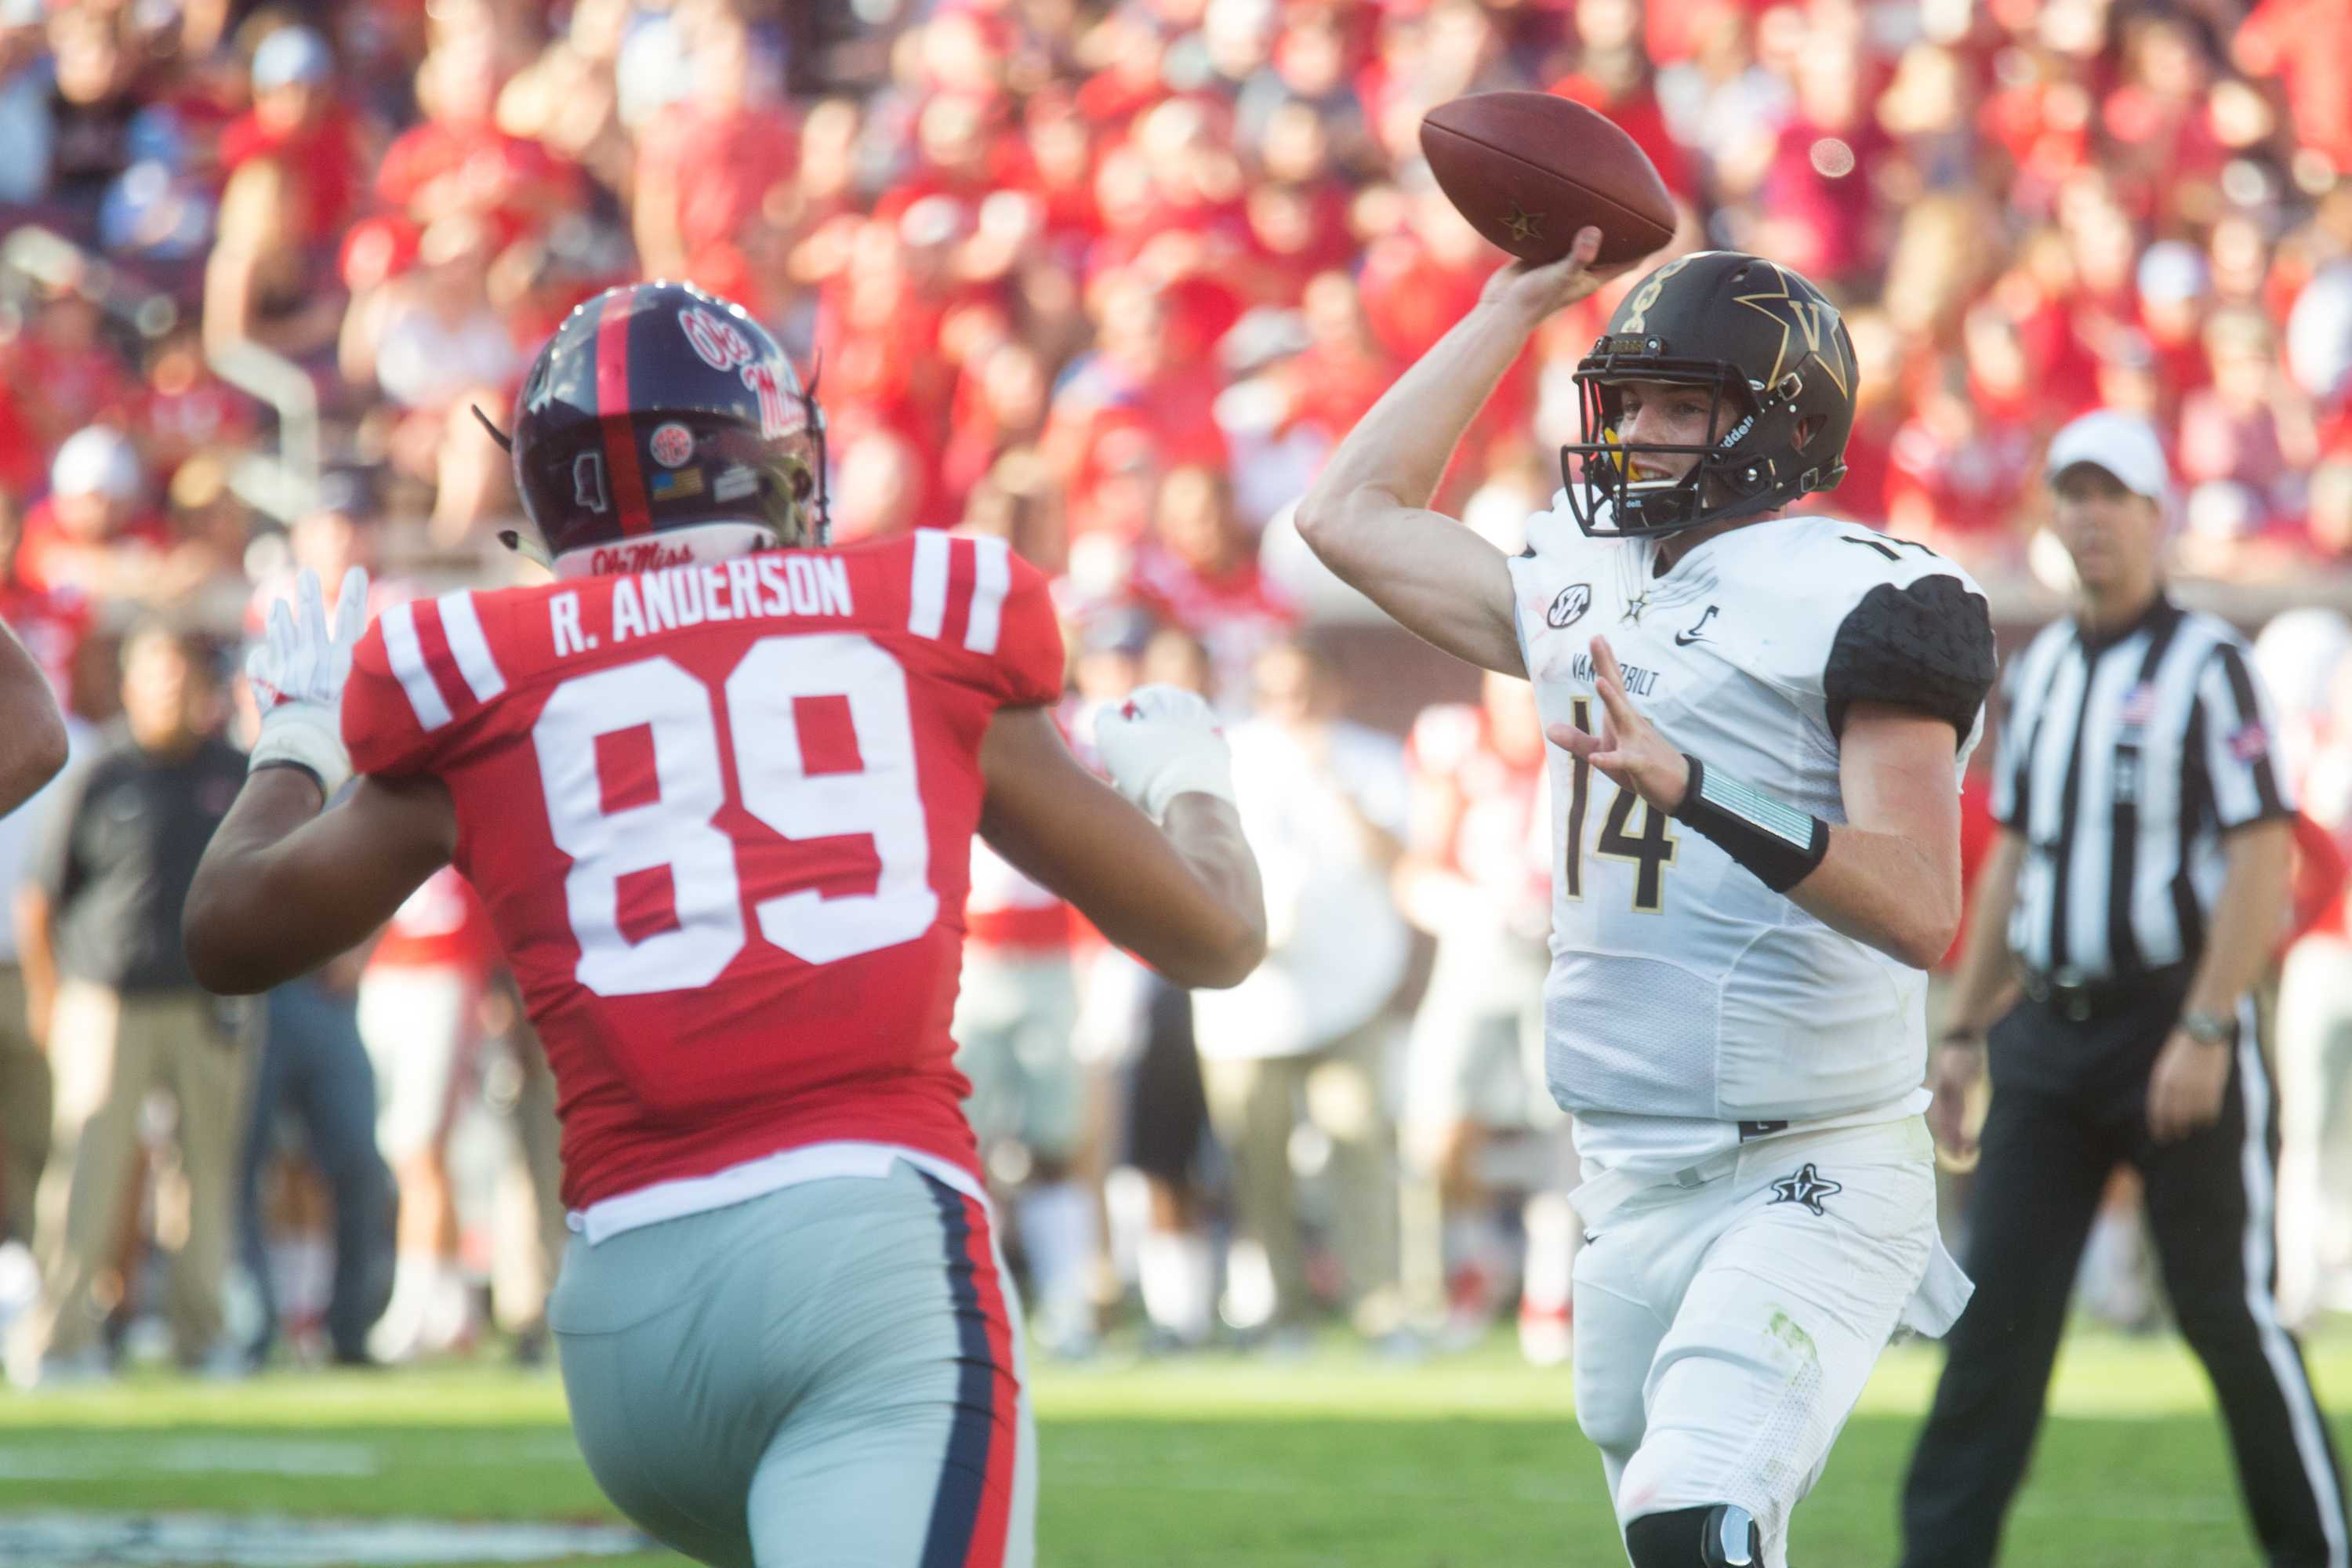 The Commodores play football at Ole Miss on Saturday, October 14, 2017. Photo by Claire Barnett.